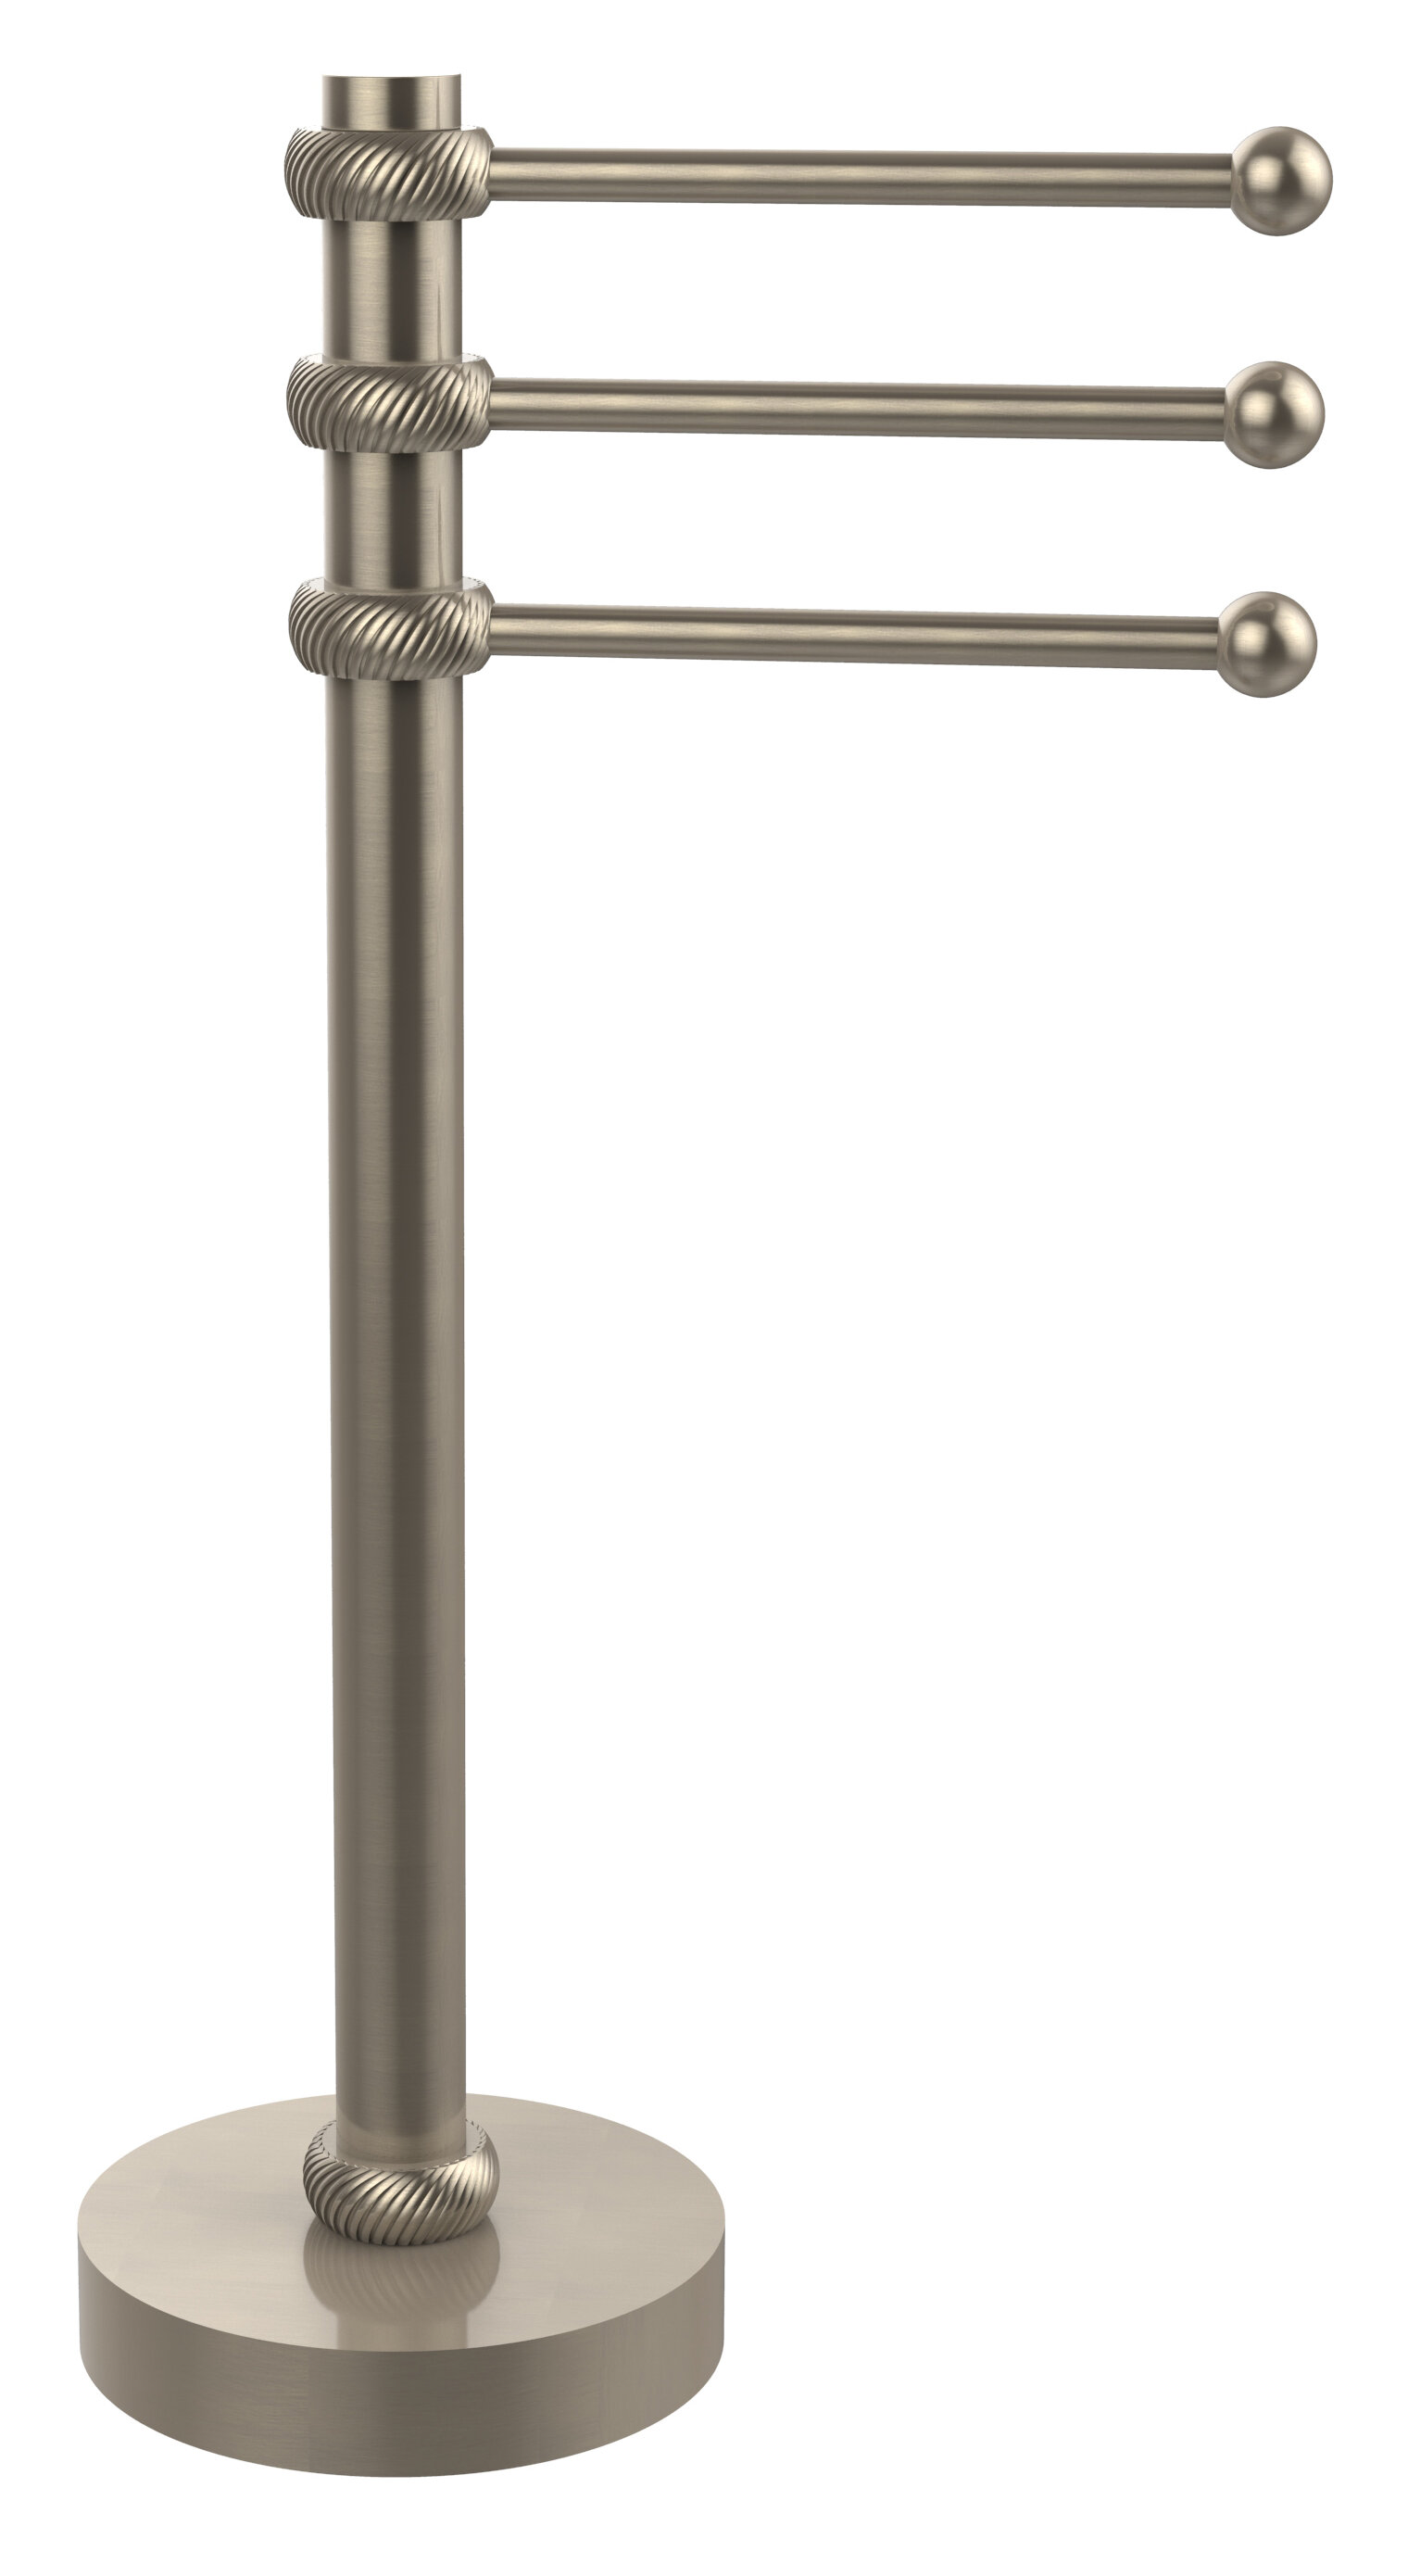 Wondrous 3 Swing Arm Countertop Towel Stand Home Interior And Landscaping Ologienasavecom